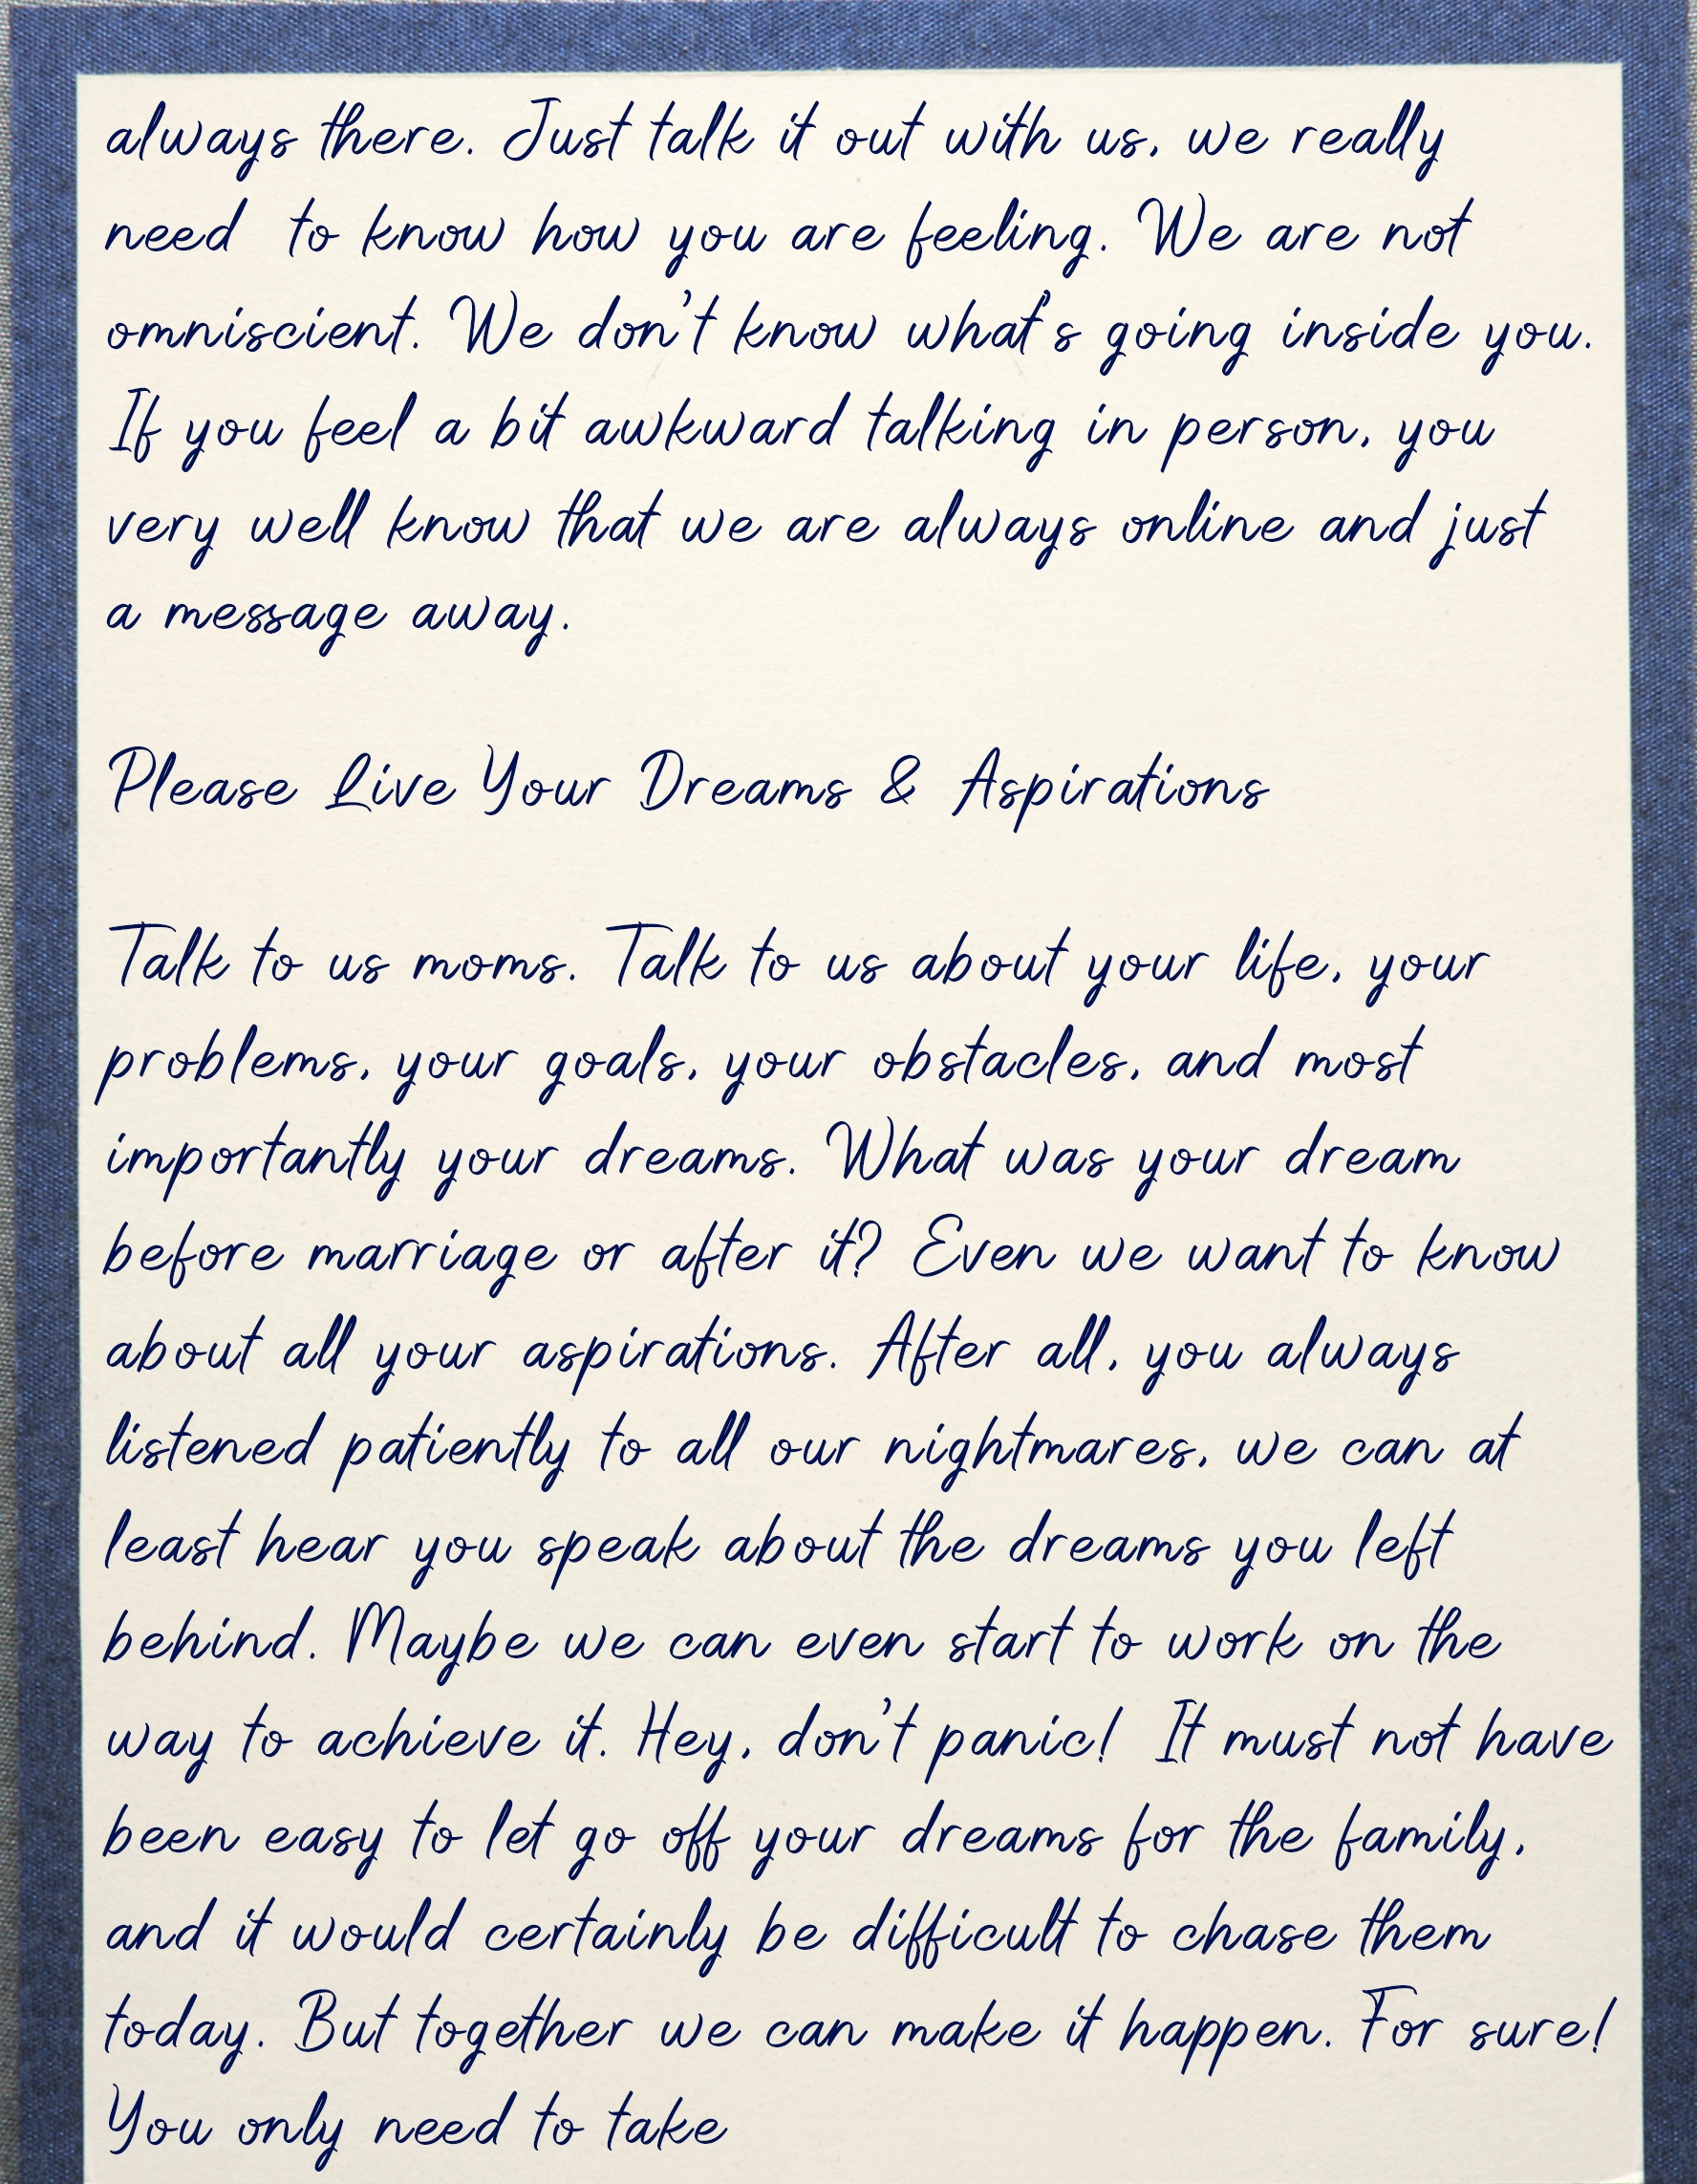 Letter To mom 5